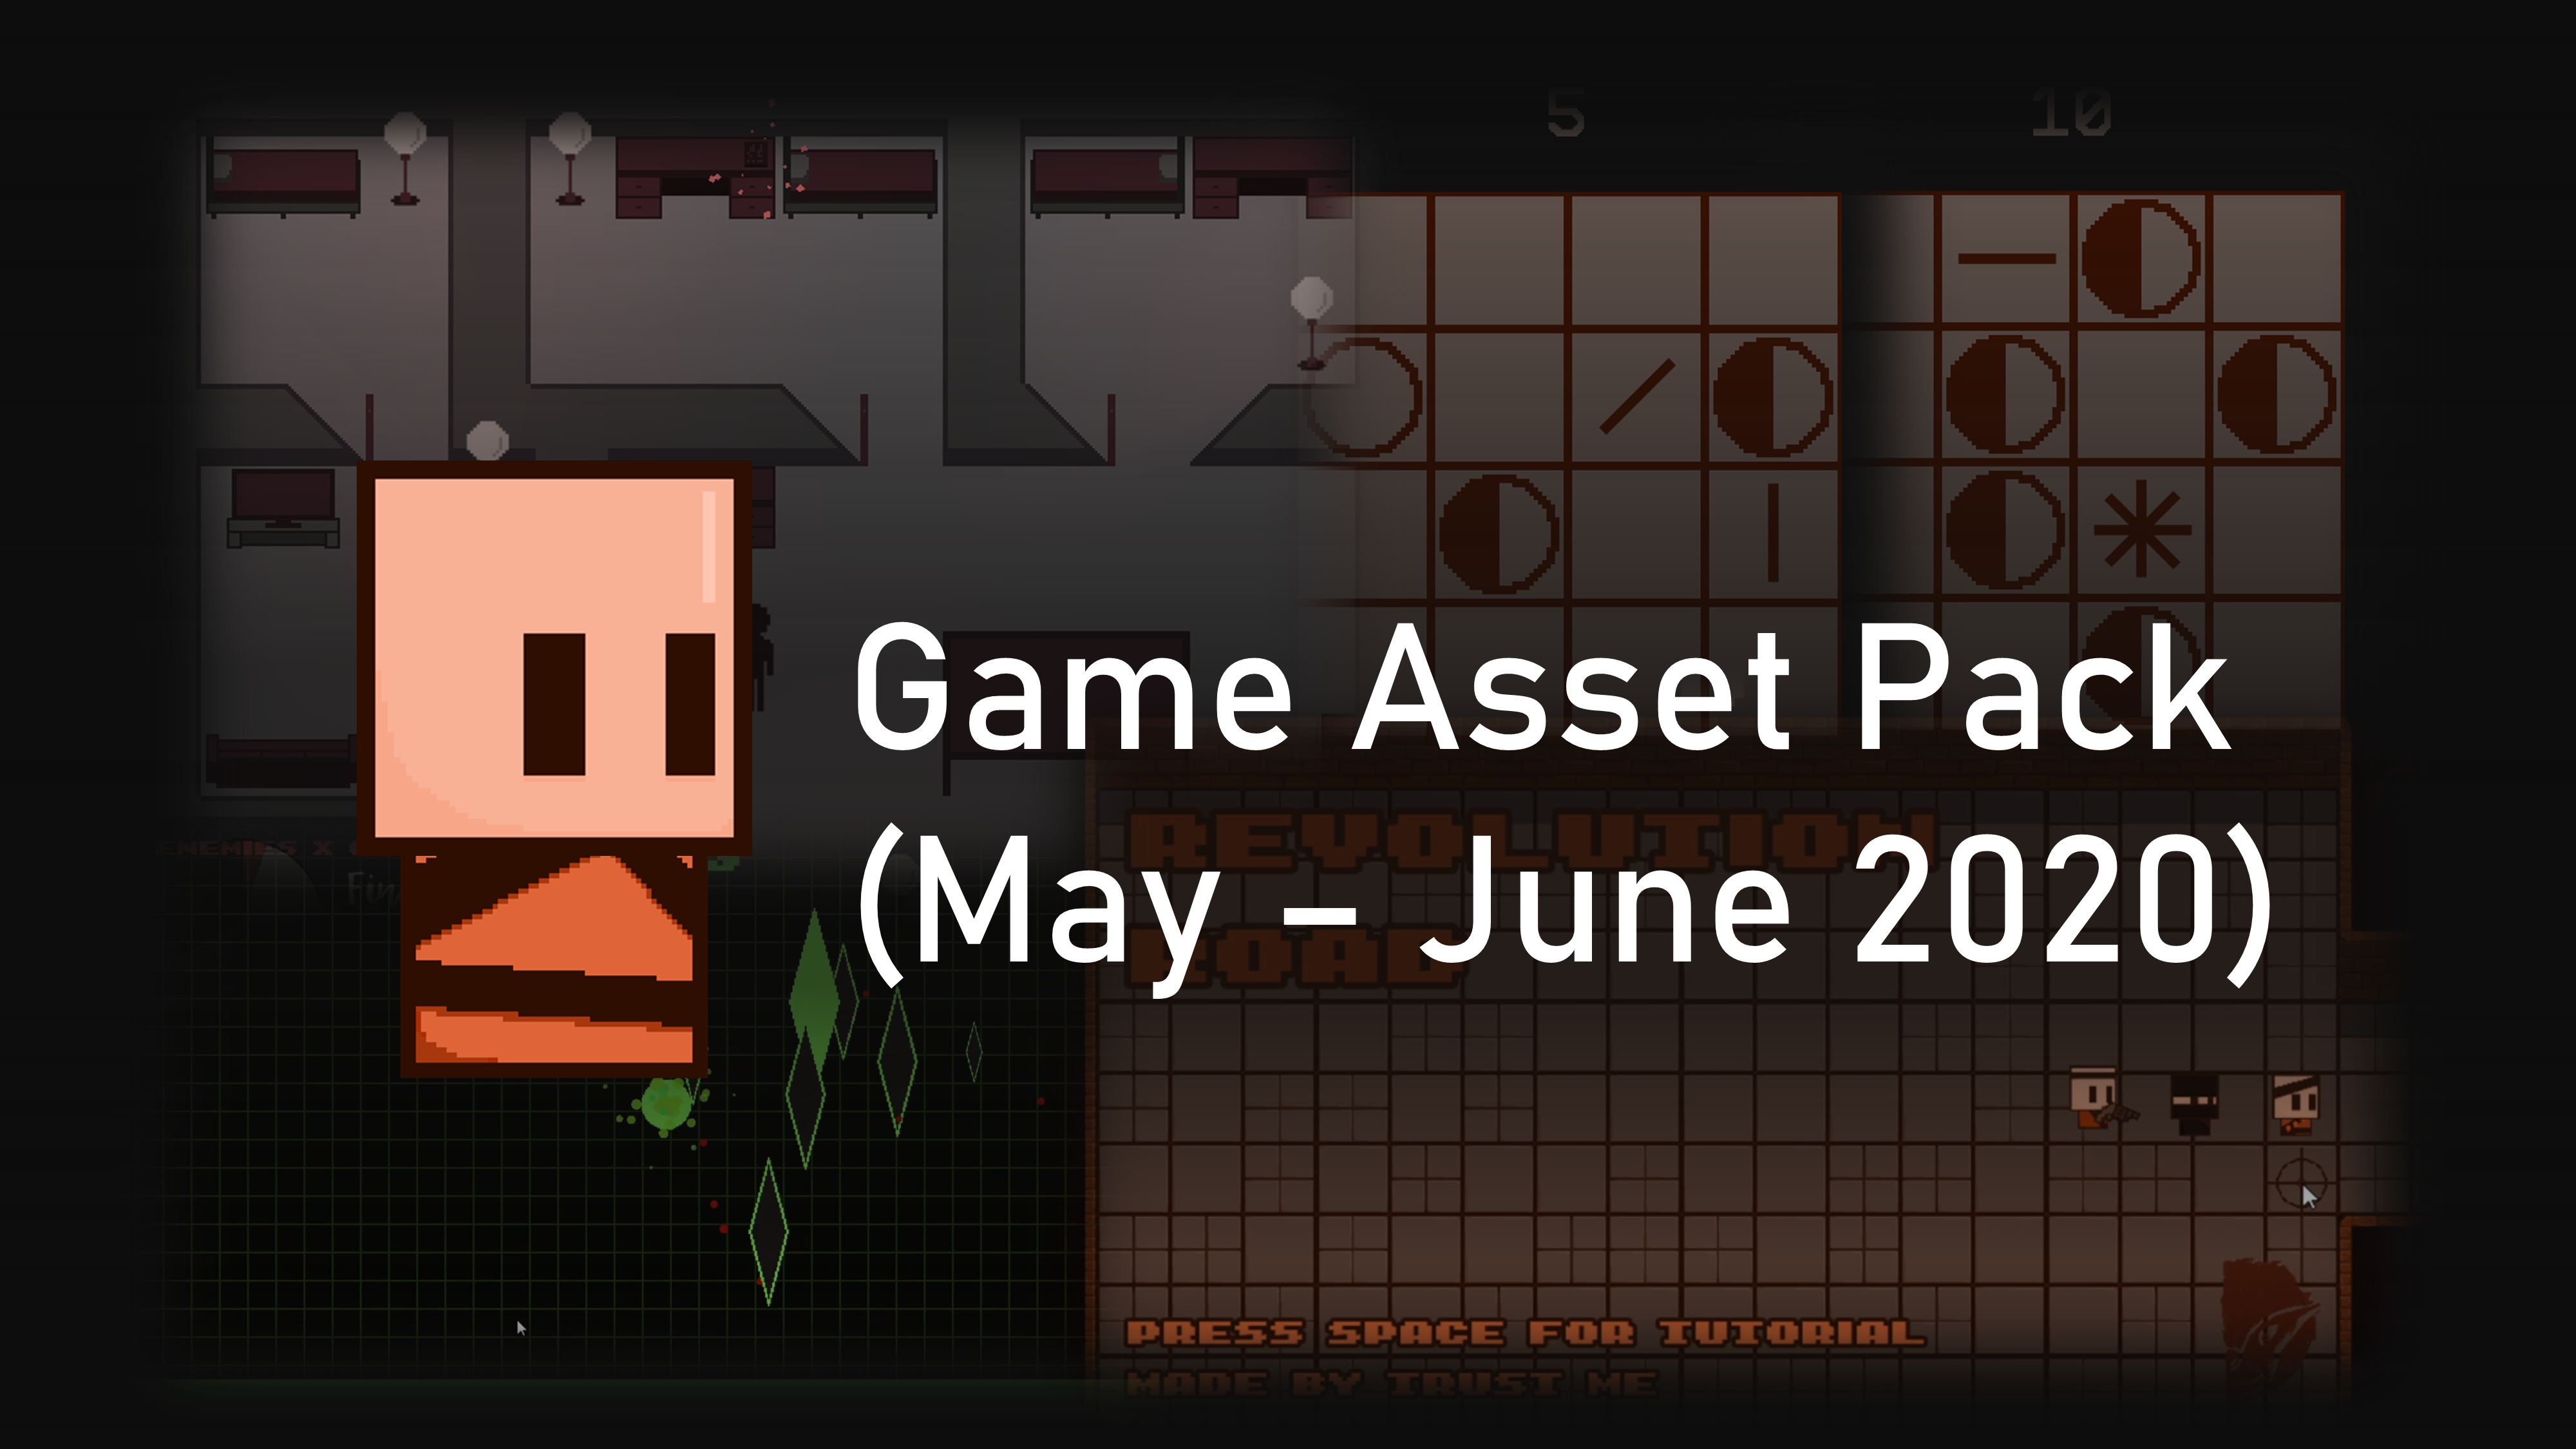 Asset pack (May - June 2020)